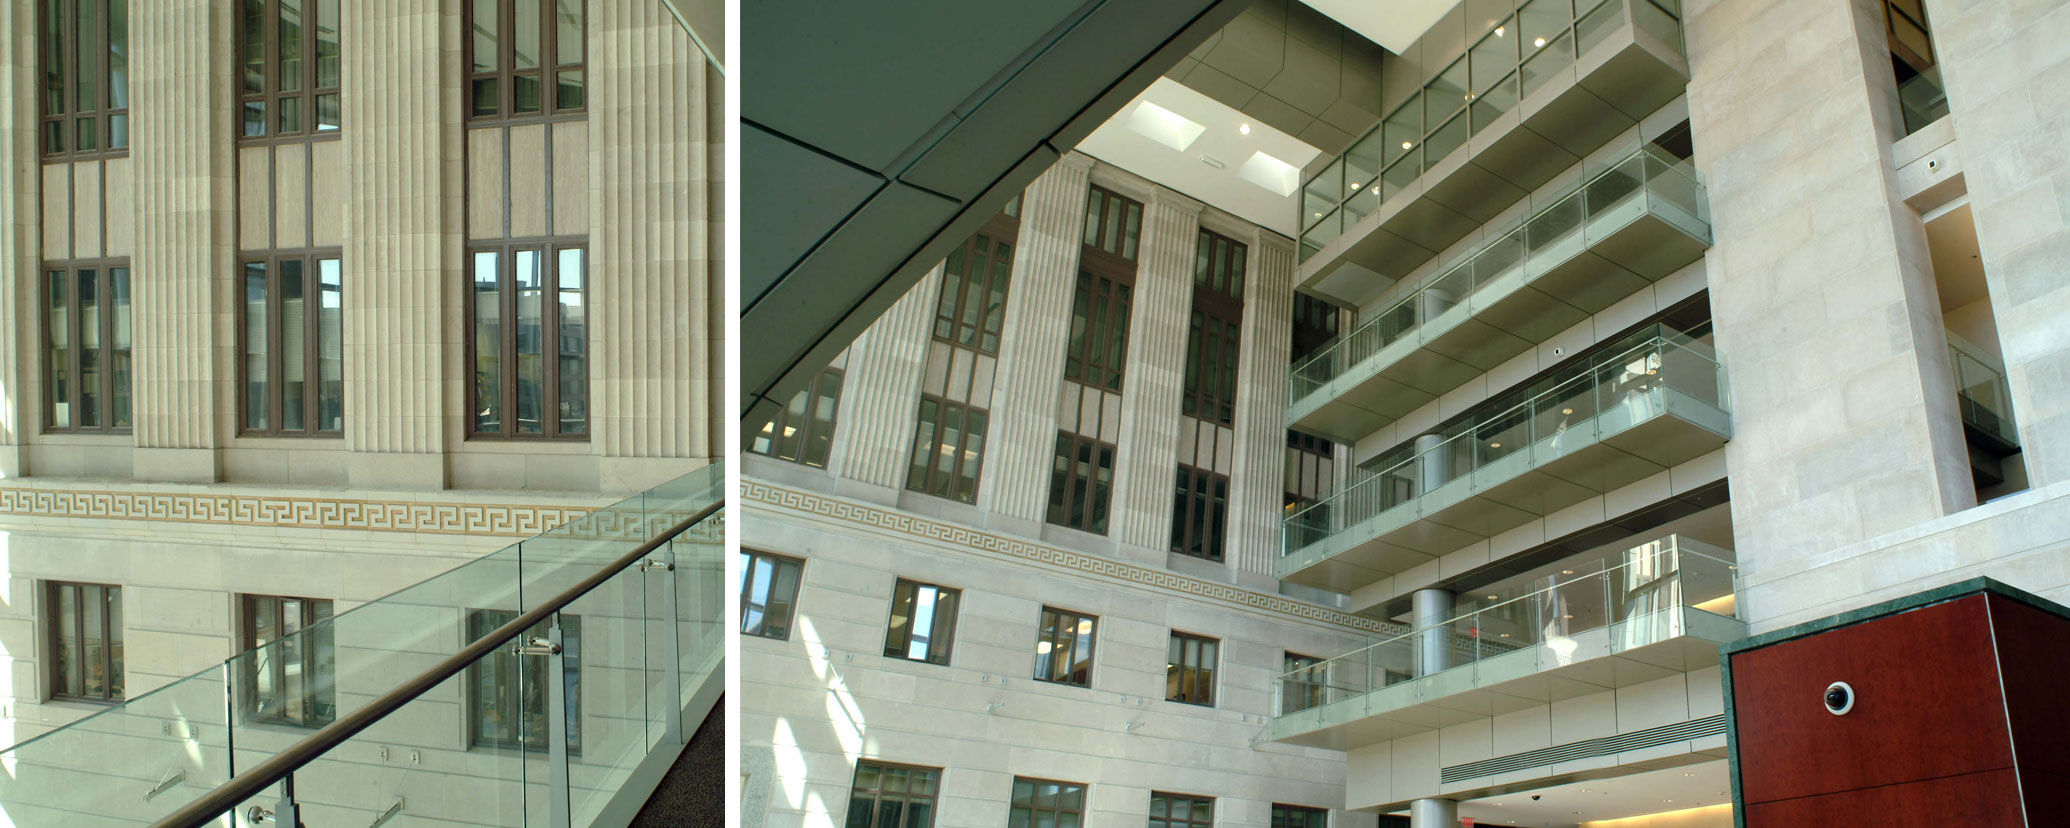 Caddell Construction - Interior of U.S. Courthouse, Little Rock, AR